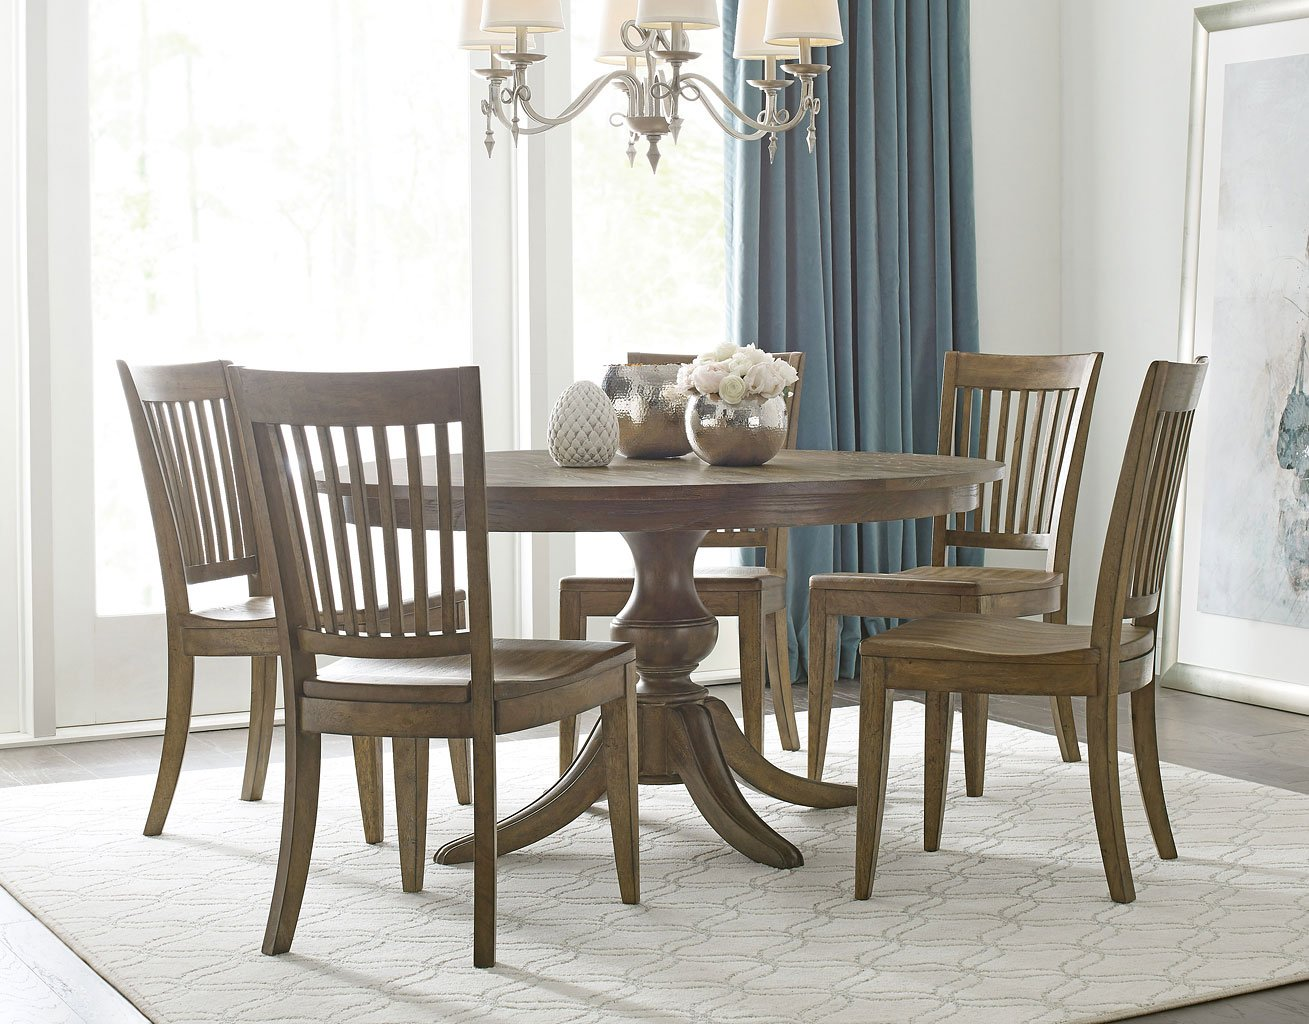 The Nook Inch Round Dining Room Set Oak Kincaid Furniture - 54 inch round dining room table